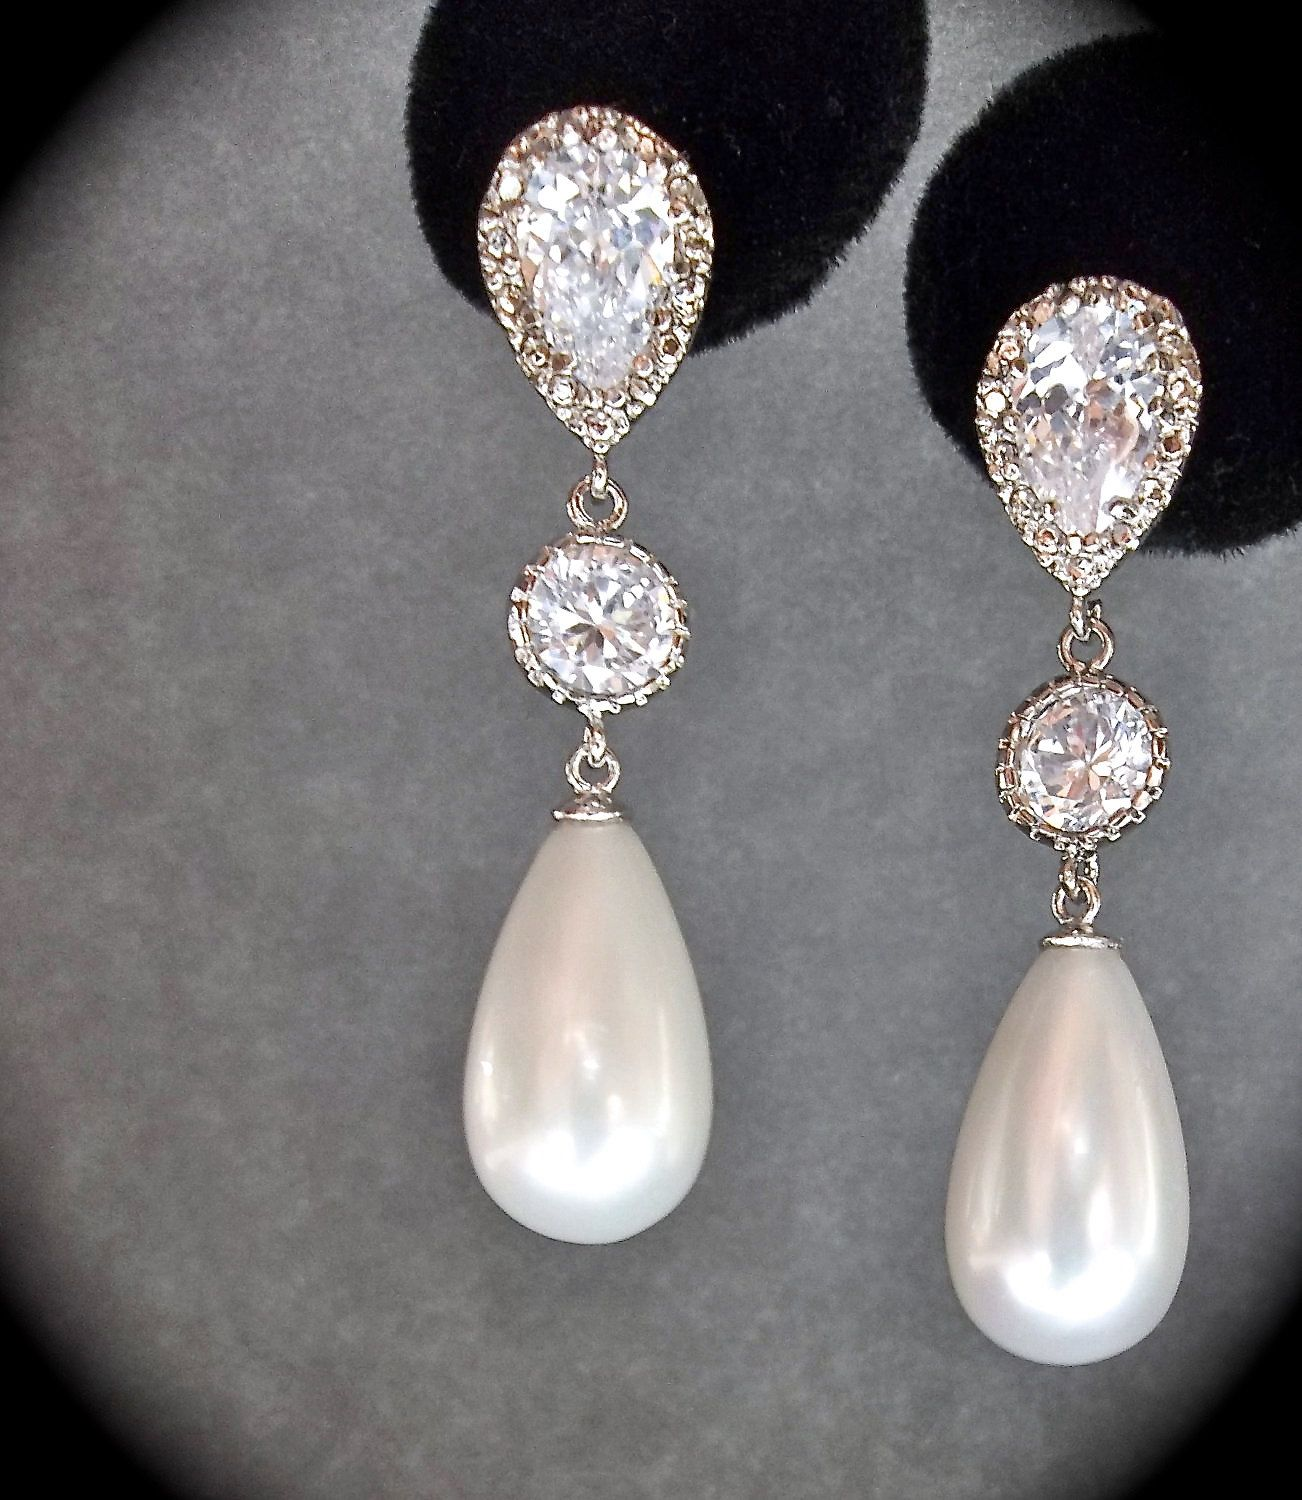 1897e7852 Bridal Jewelry - Sterling Silver - Long - pearl drop earrings - Pearl  earrings - Brides earrings -. $42.99, via Etsy.